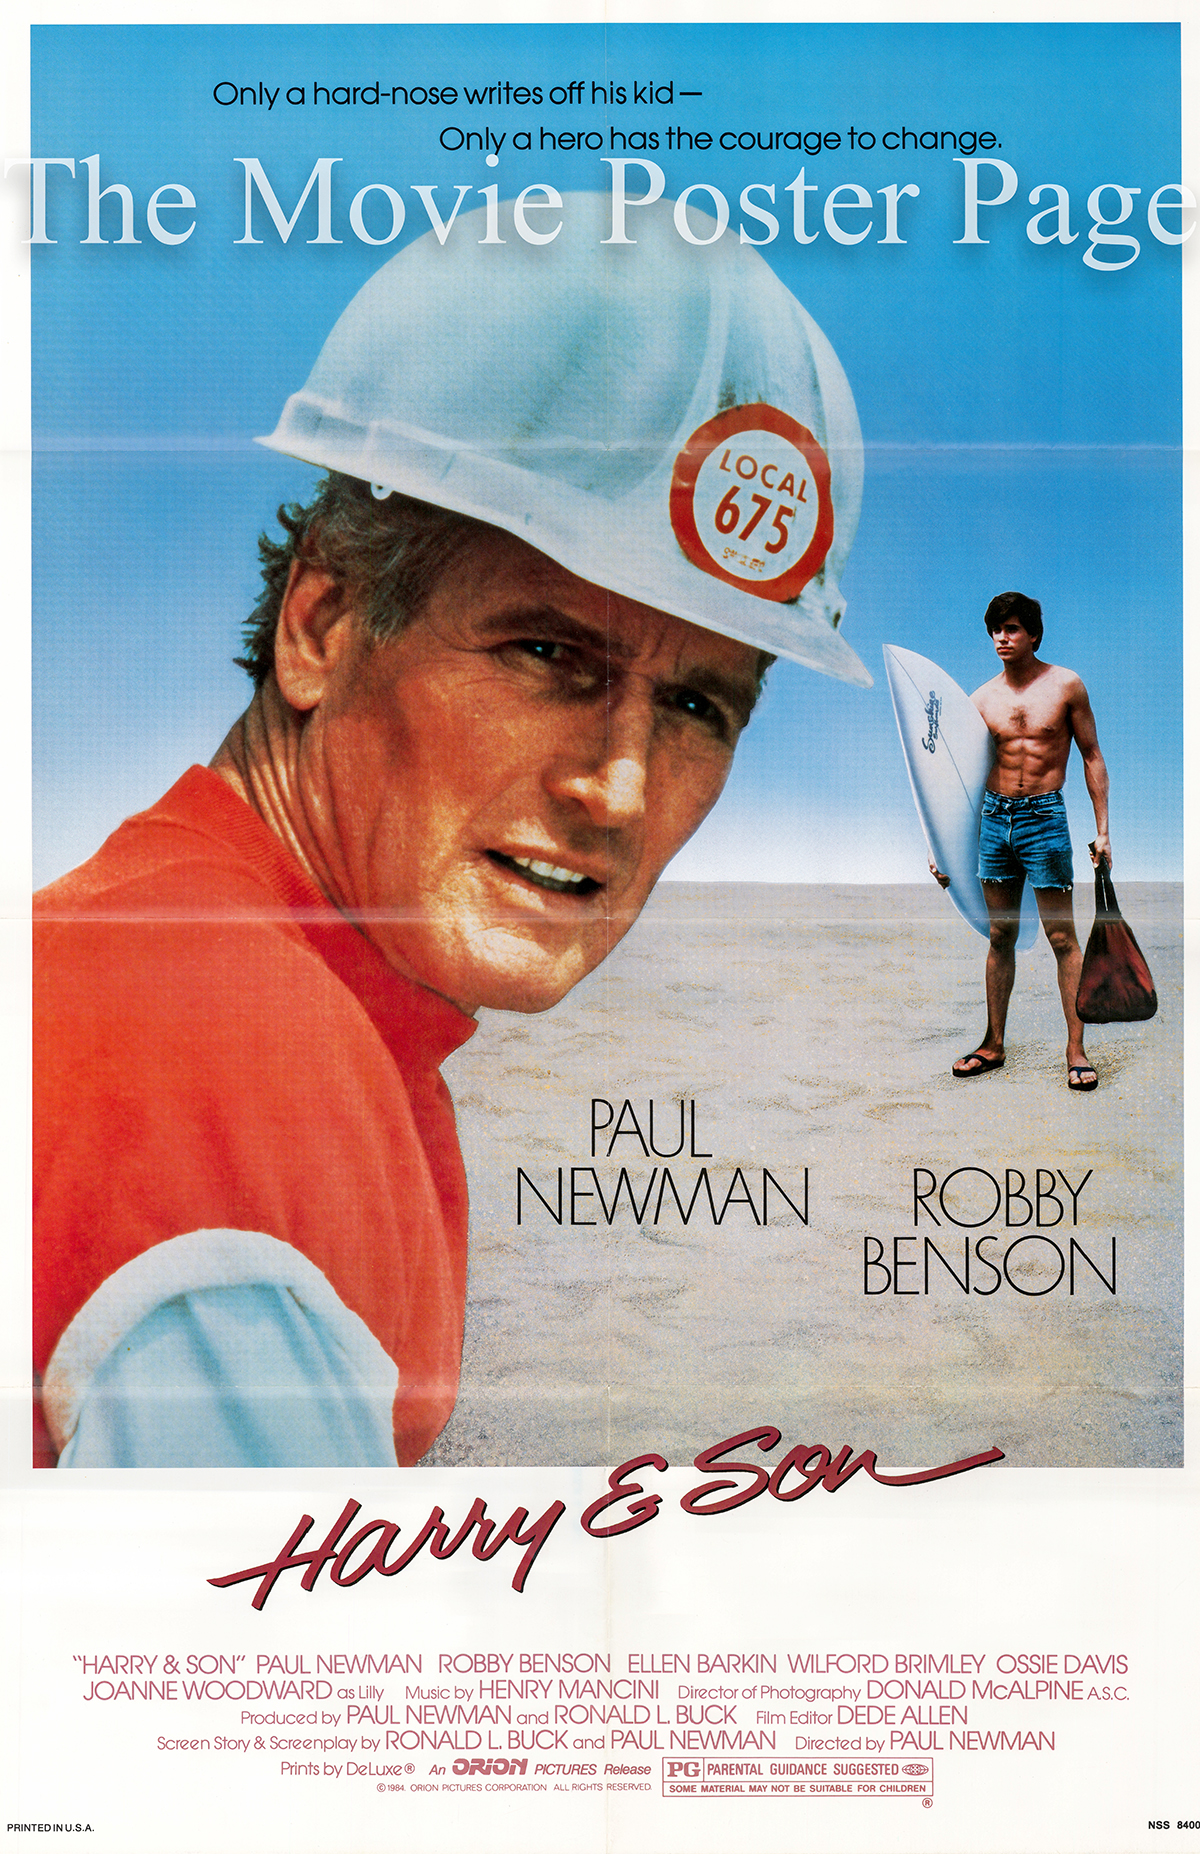 Pictured is a US promotional one-sheet poster for the 1984 Paul Newman film Harry and Son starring Robby Benson and Paul Newman.